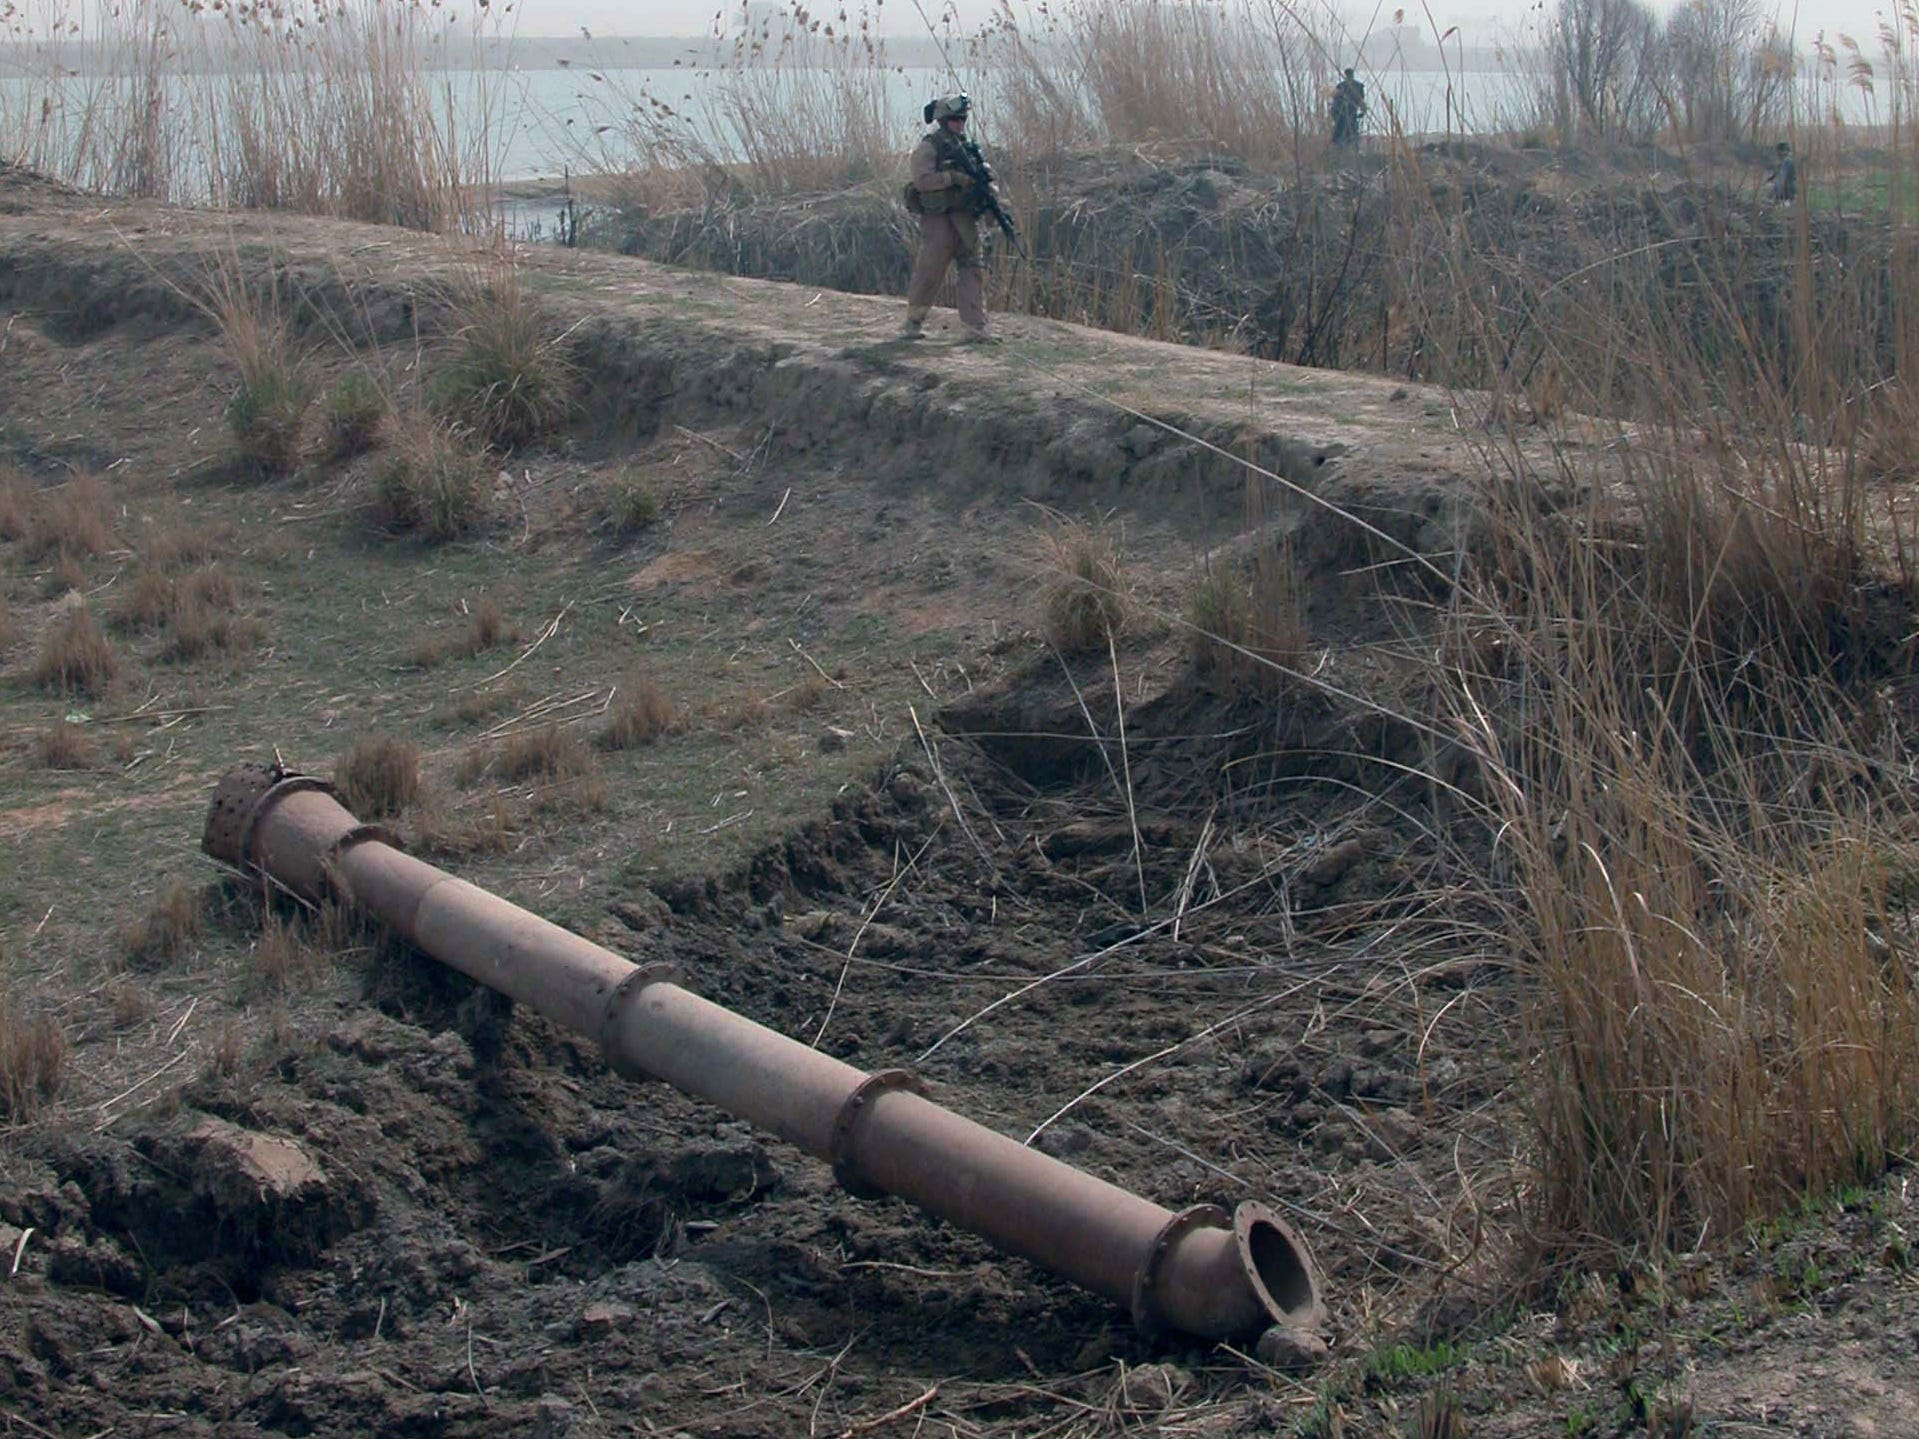 Cpl. Gregory Patterson of Waupun walks along farm fields next to the Euphrates River with Iraqi police searching for weapons and bombs buried in the ground by insurgents. A piece of irrigation pipe is in the foreground.